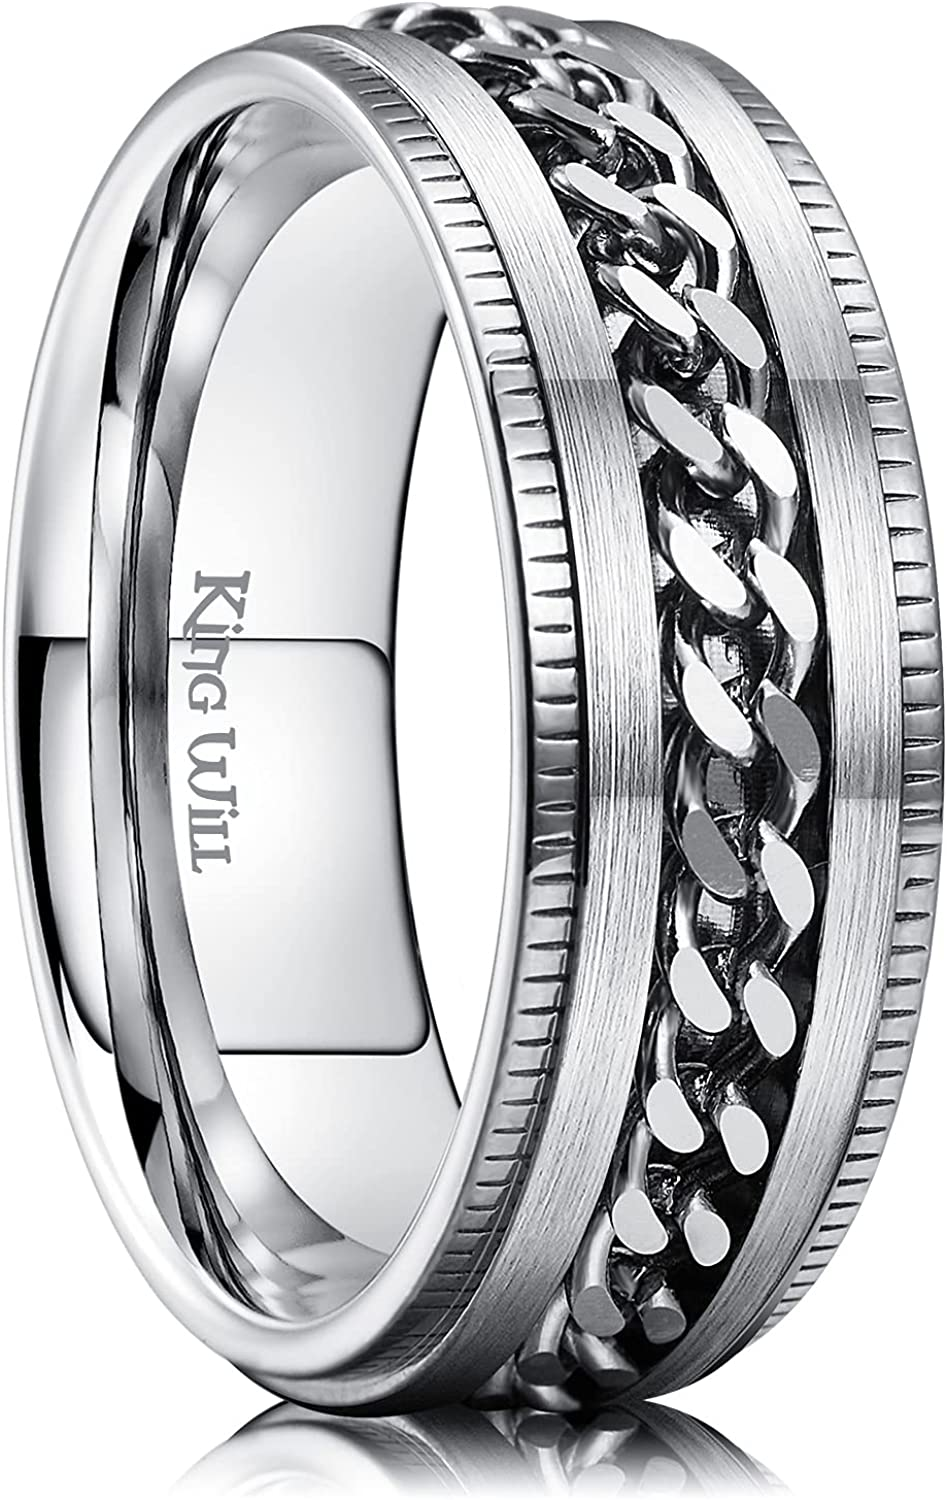 King Will Intertwine 8mm Spinner Ring Stainless Steel Fidget Ring Anxiety Ring for Men Black/Blue/Silver